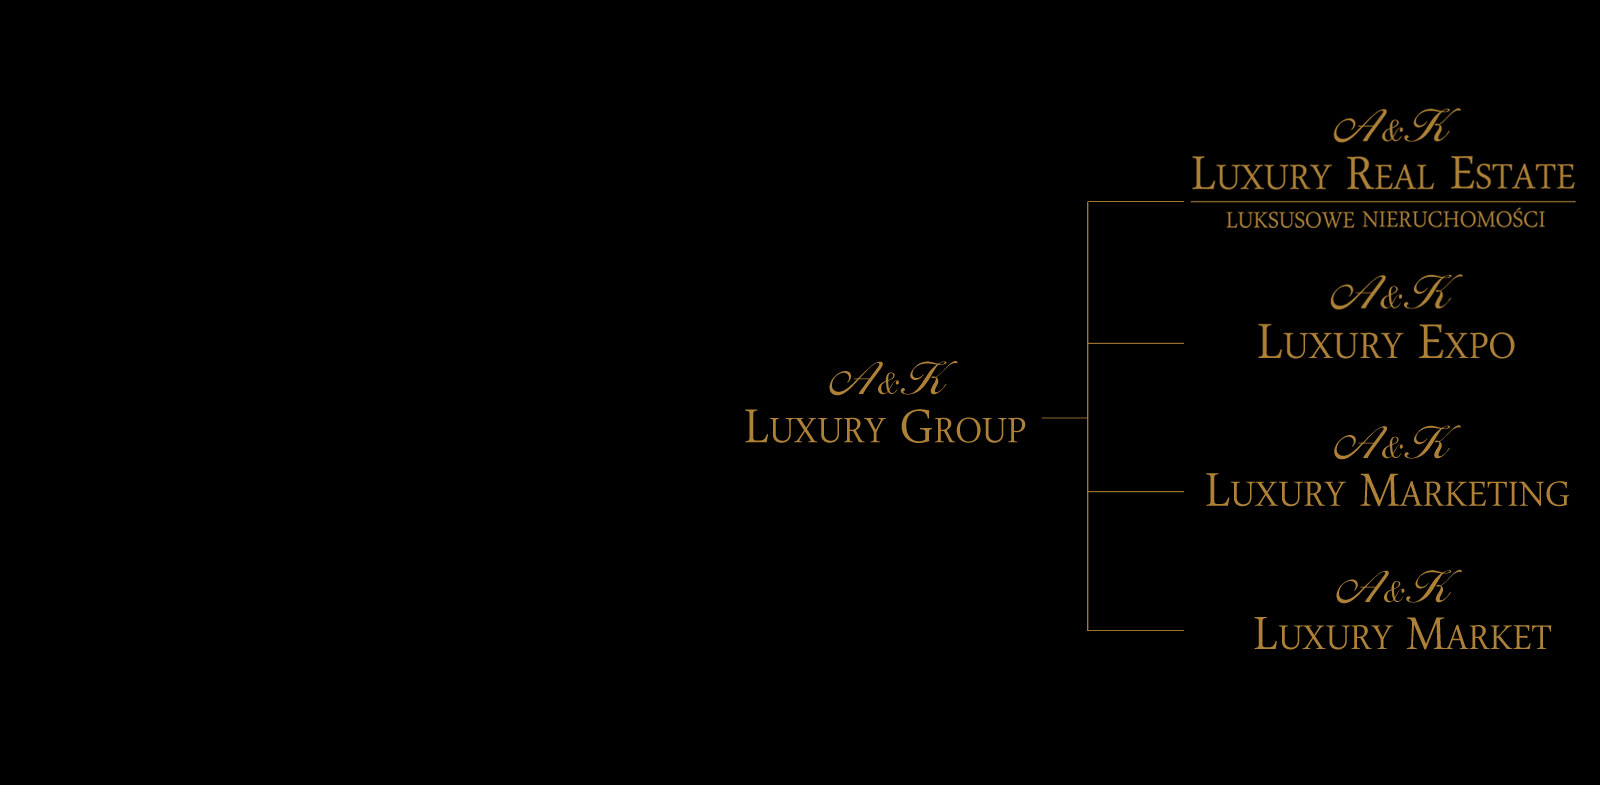 Luxury Group